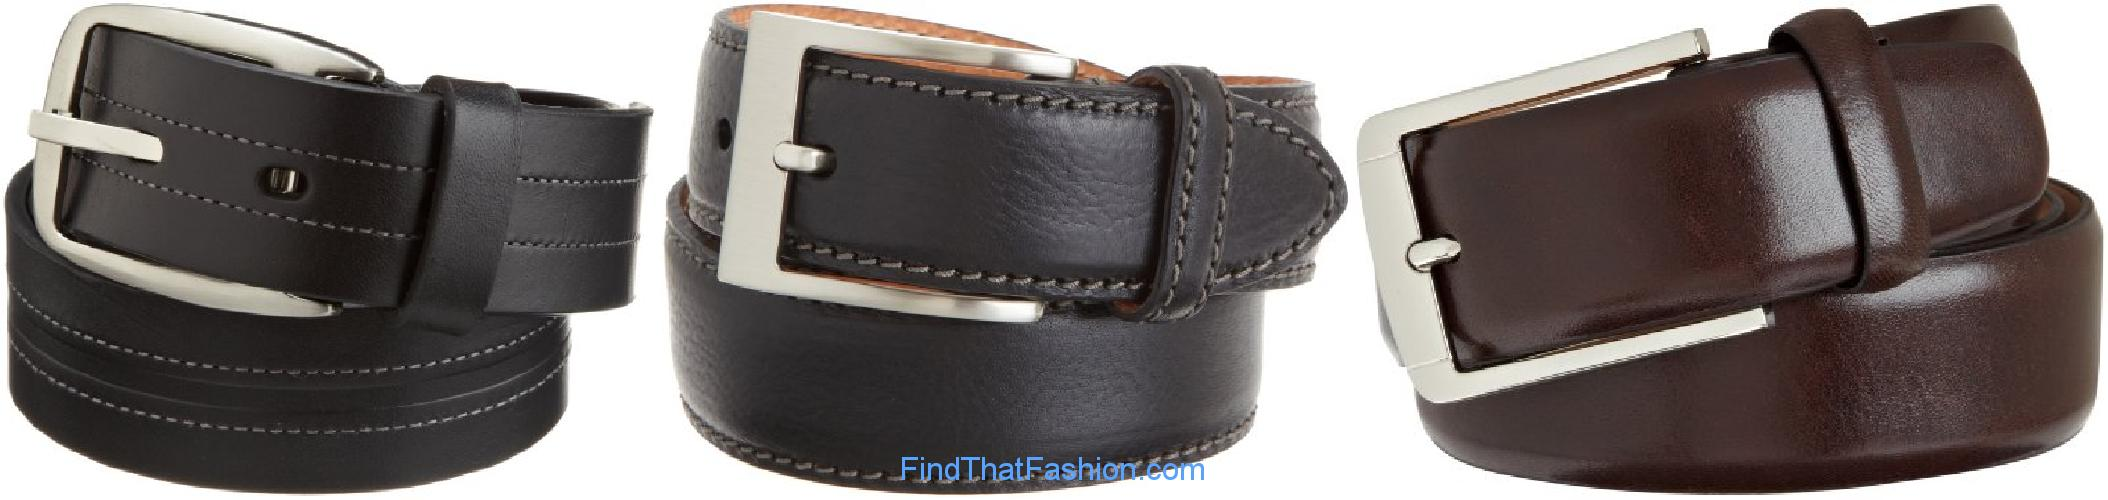 Trafalgar Mens Leather Belts